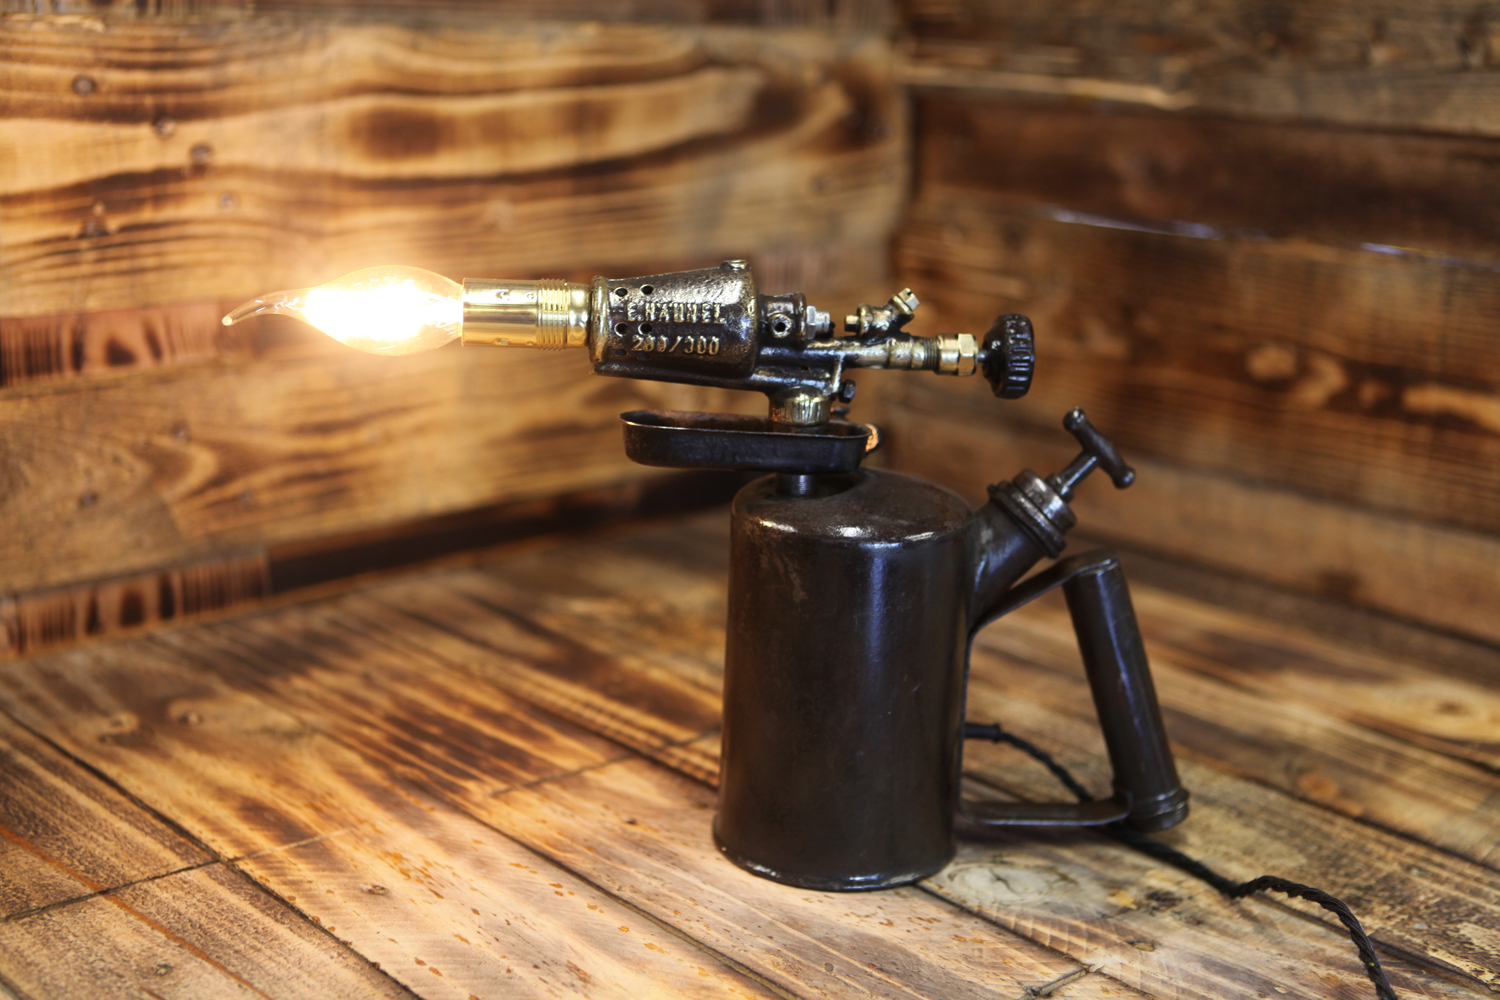 German Wwii Blow Torch By E H 228 Hnel Table Lamp Silly